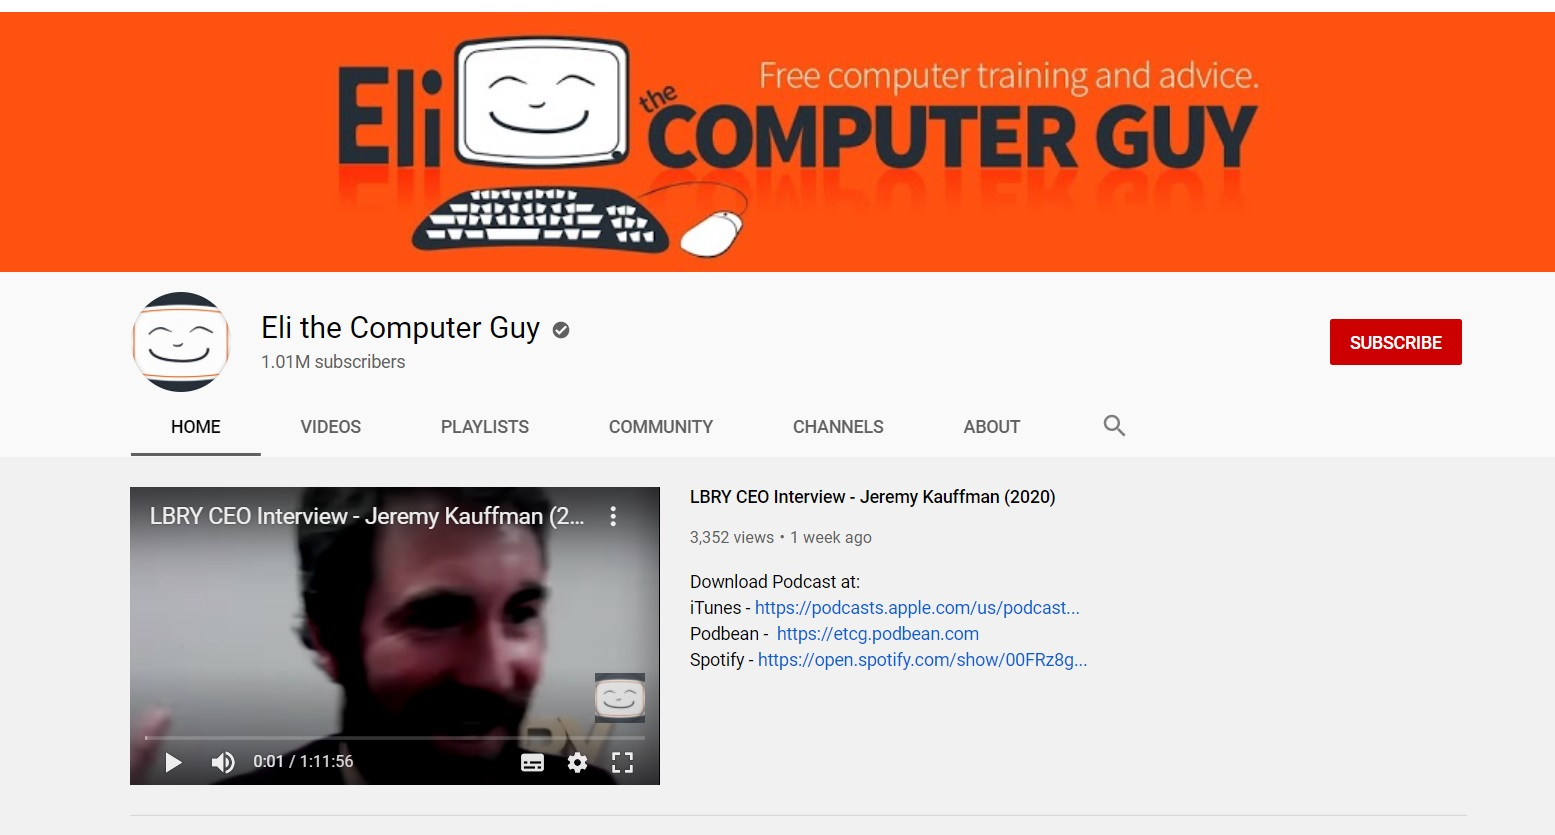 youtube coding channels eli the computer guy